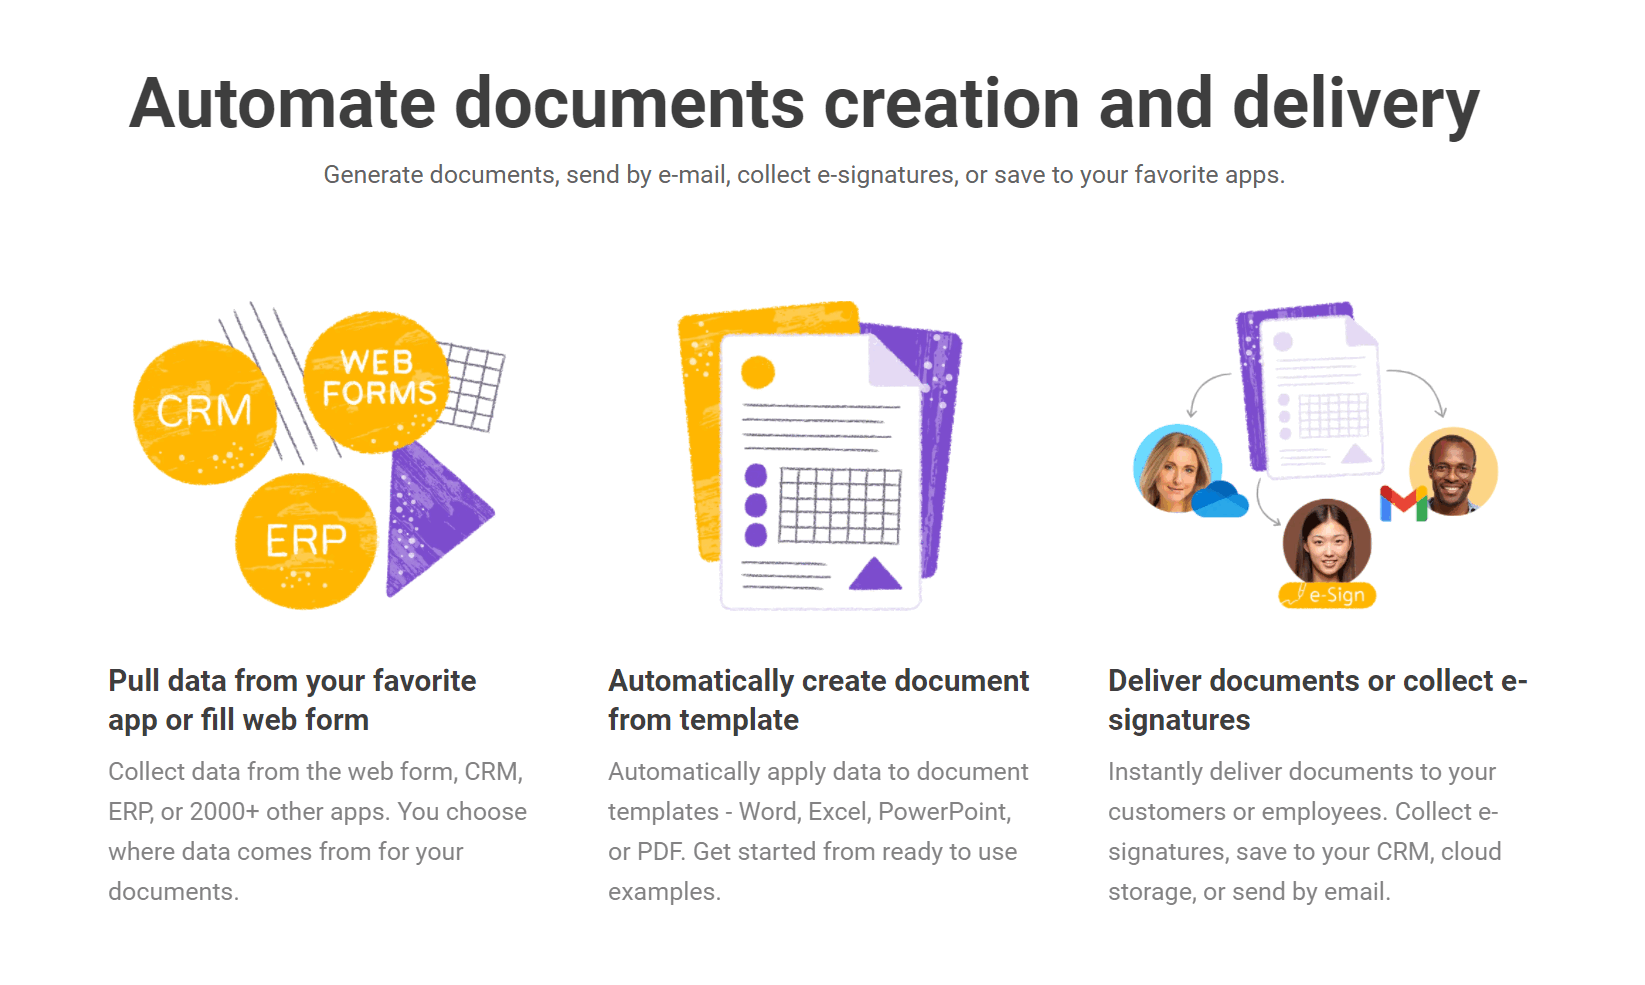 Automate document creation and delivery